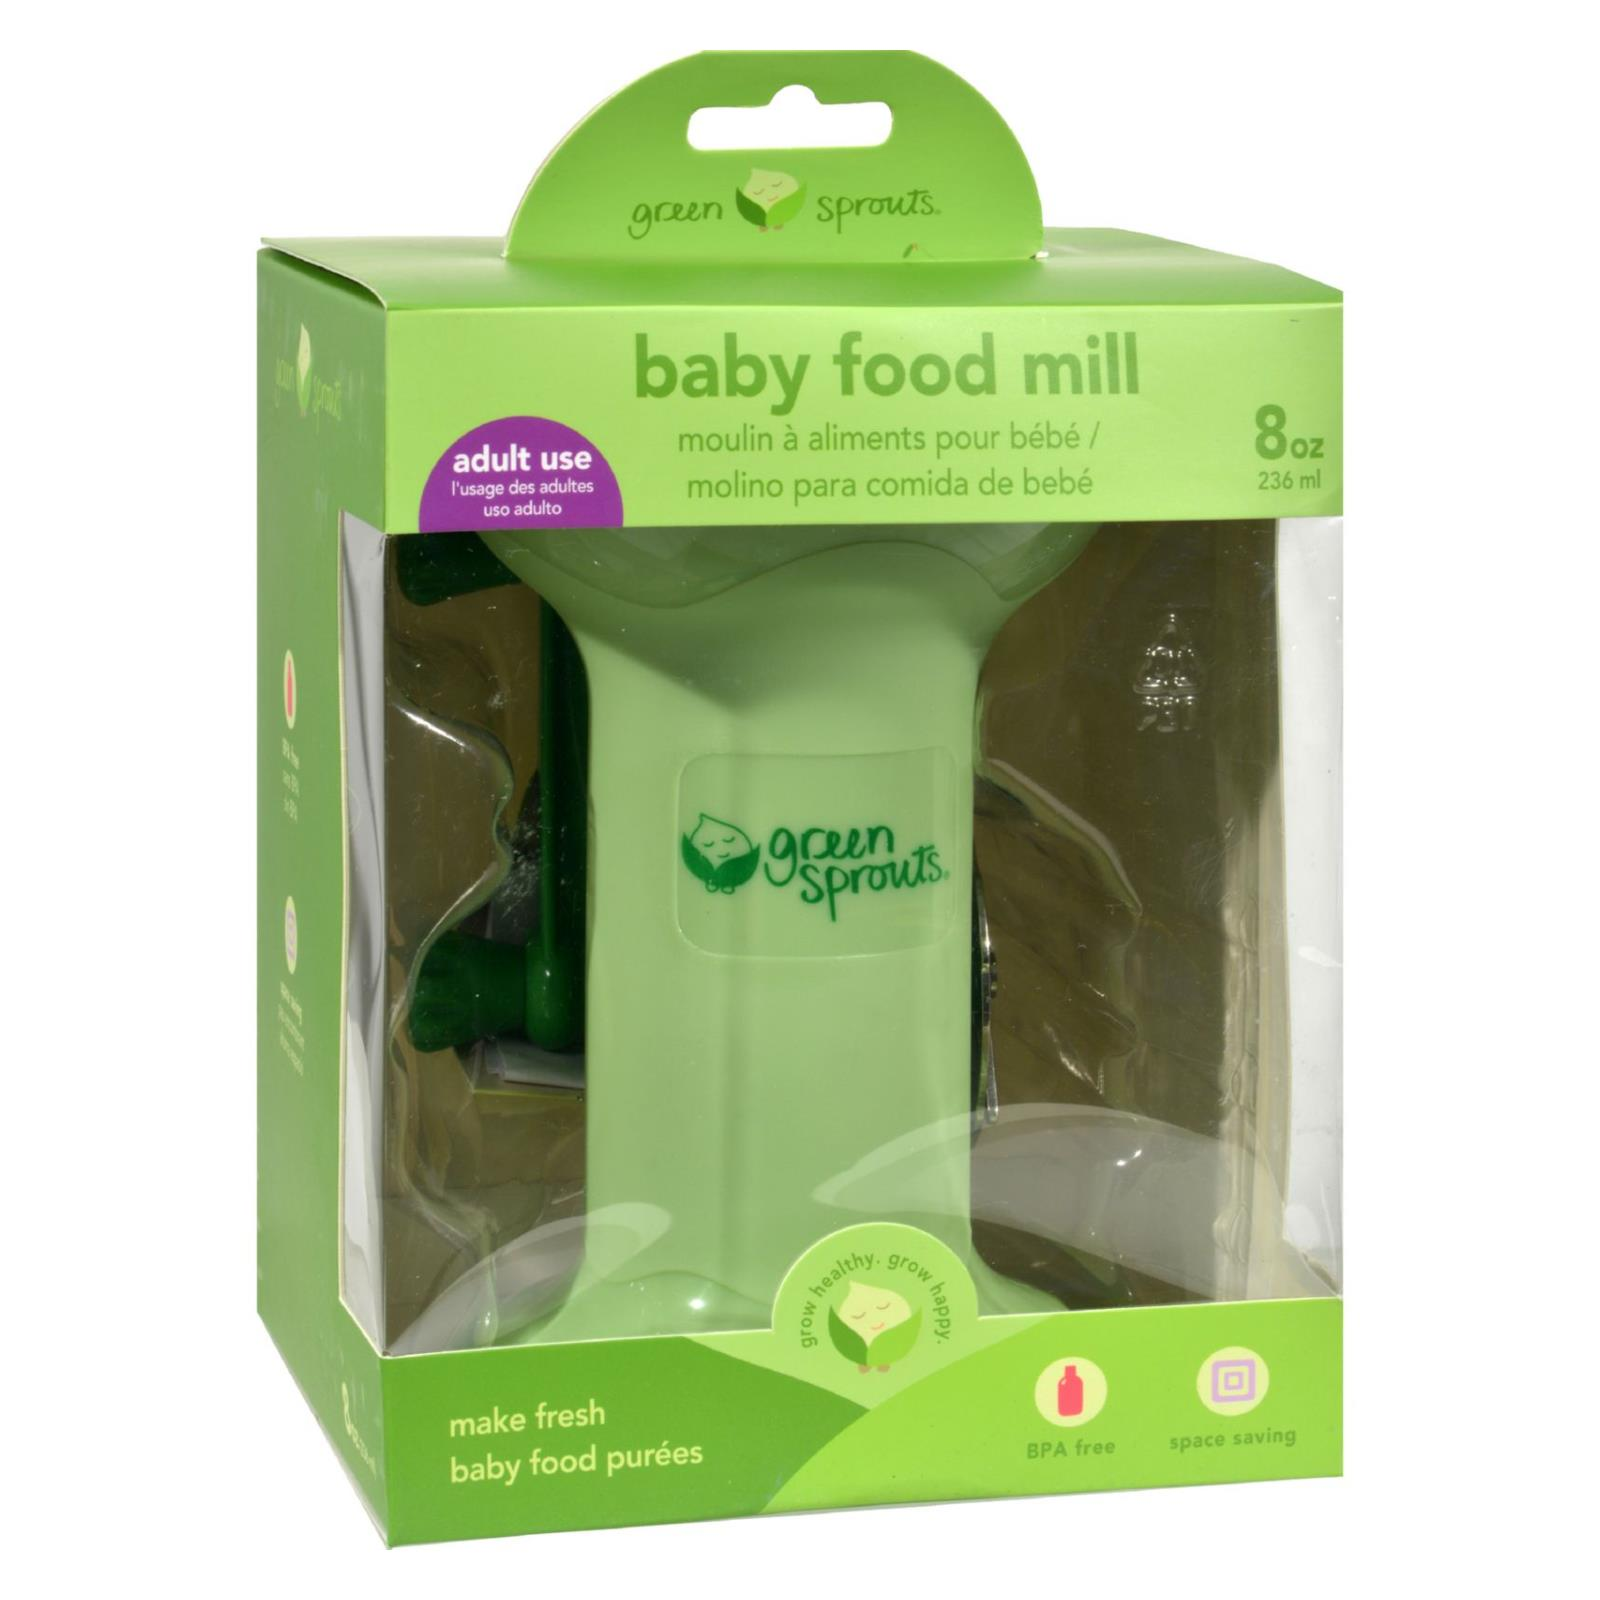 Green Sprouts Baby Food Mill